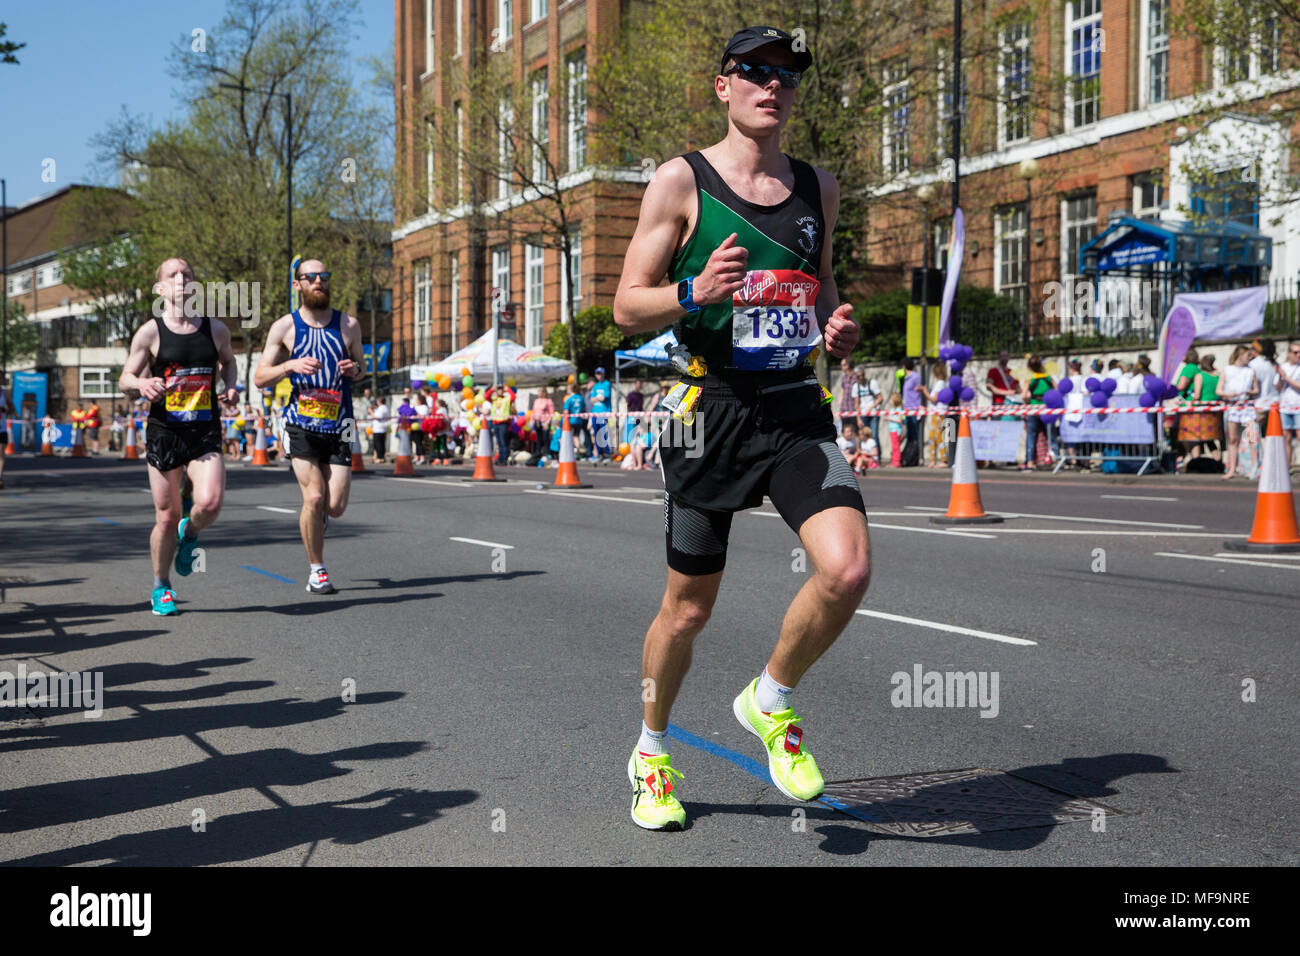 London, UK. 22nd April, 2018. Robert Windard of Lincoln and District Runners competes in the 2018 Virgin Money London Marathon. - Stock Image